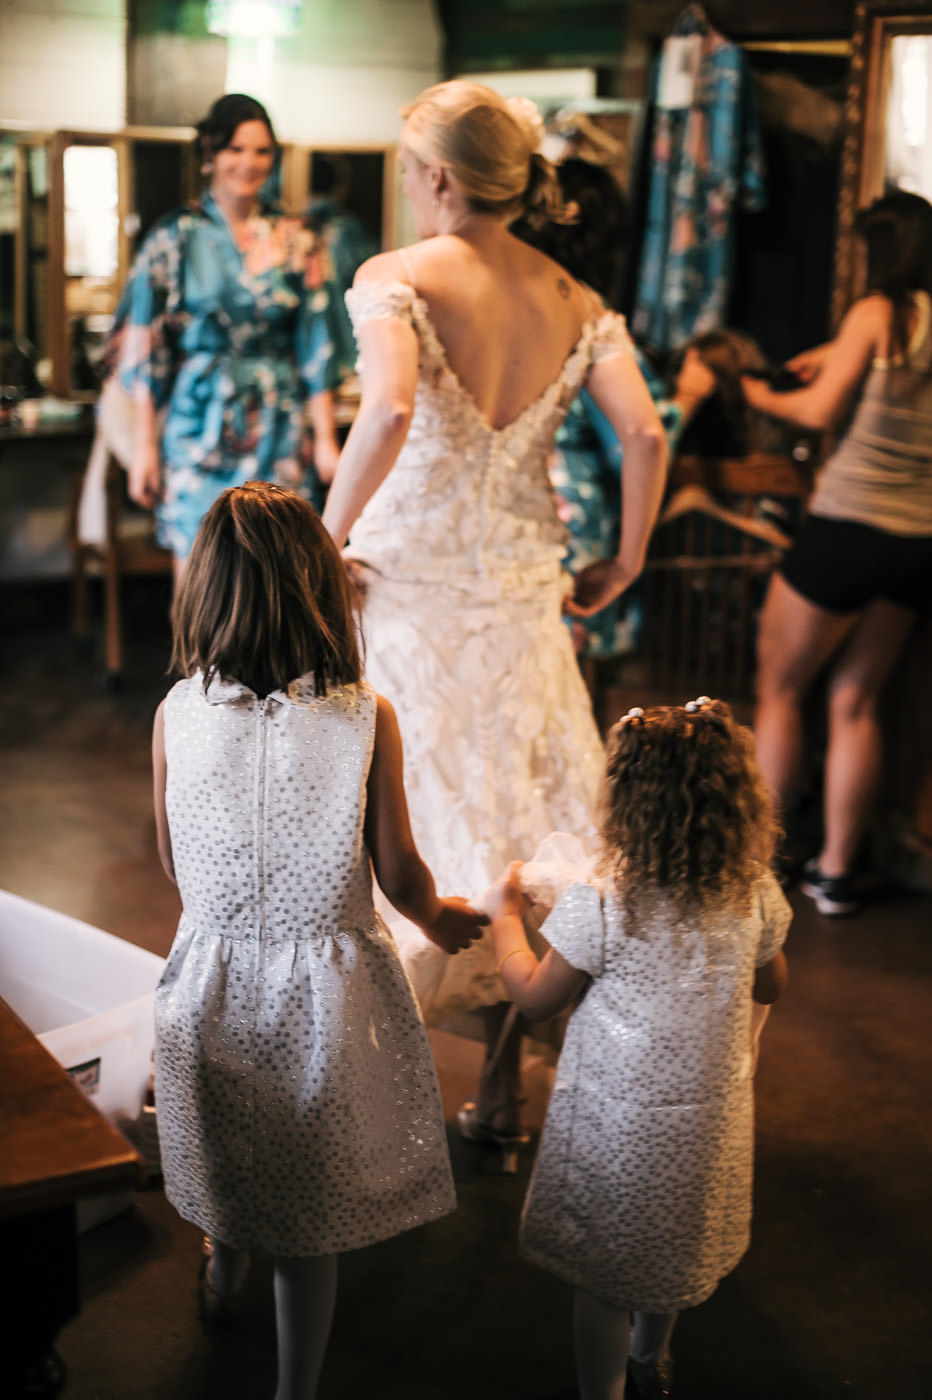 the brides little helpers assist her in moving around the bridal suite as she prepares for the first look